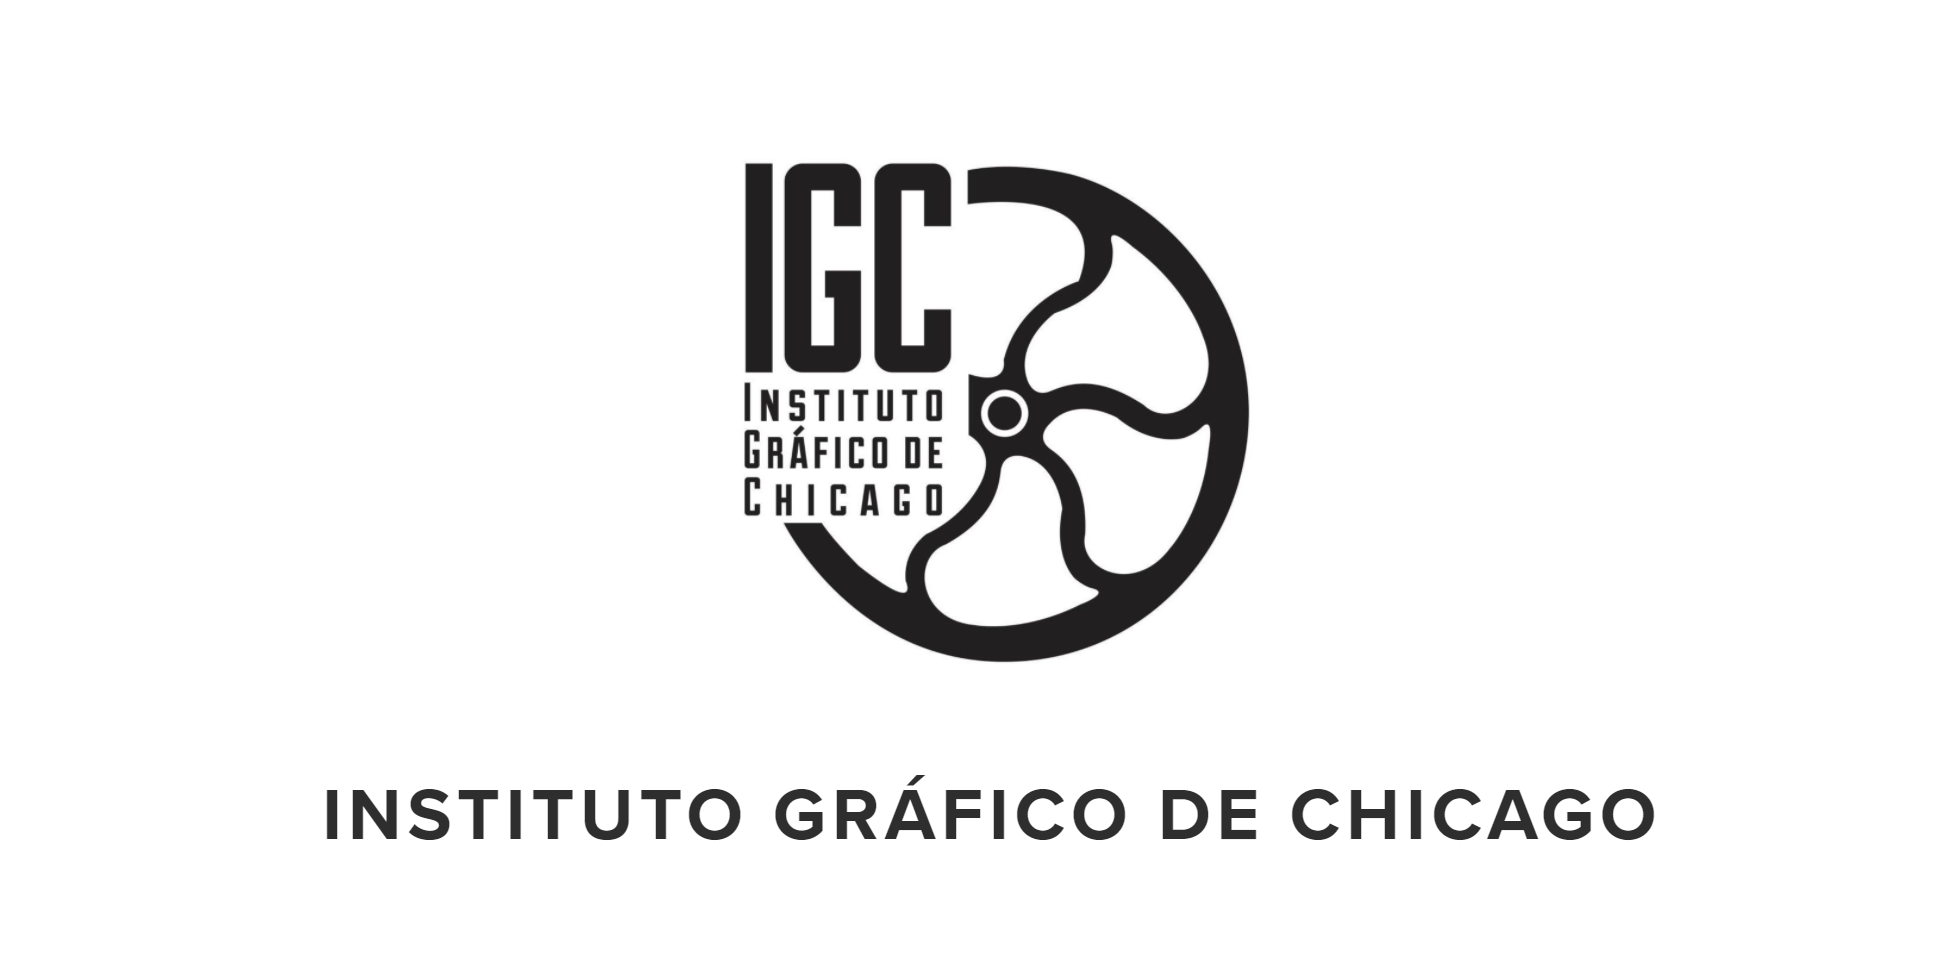 The IGC's logo that has a press wheel integrated into the text